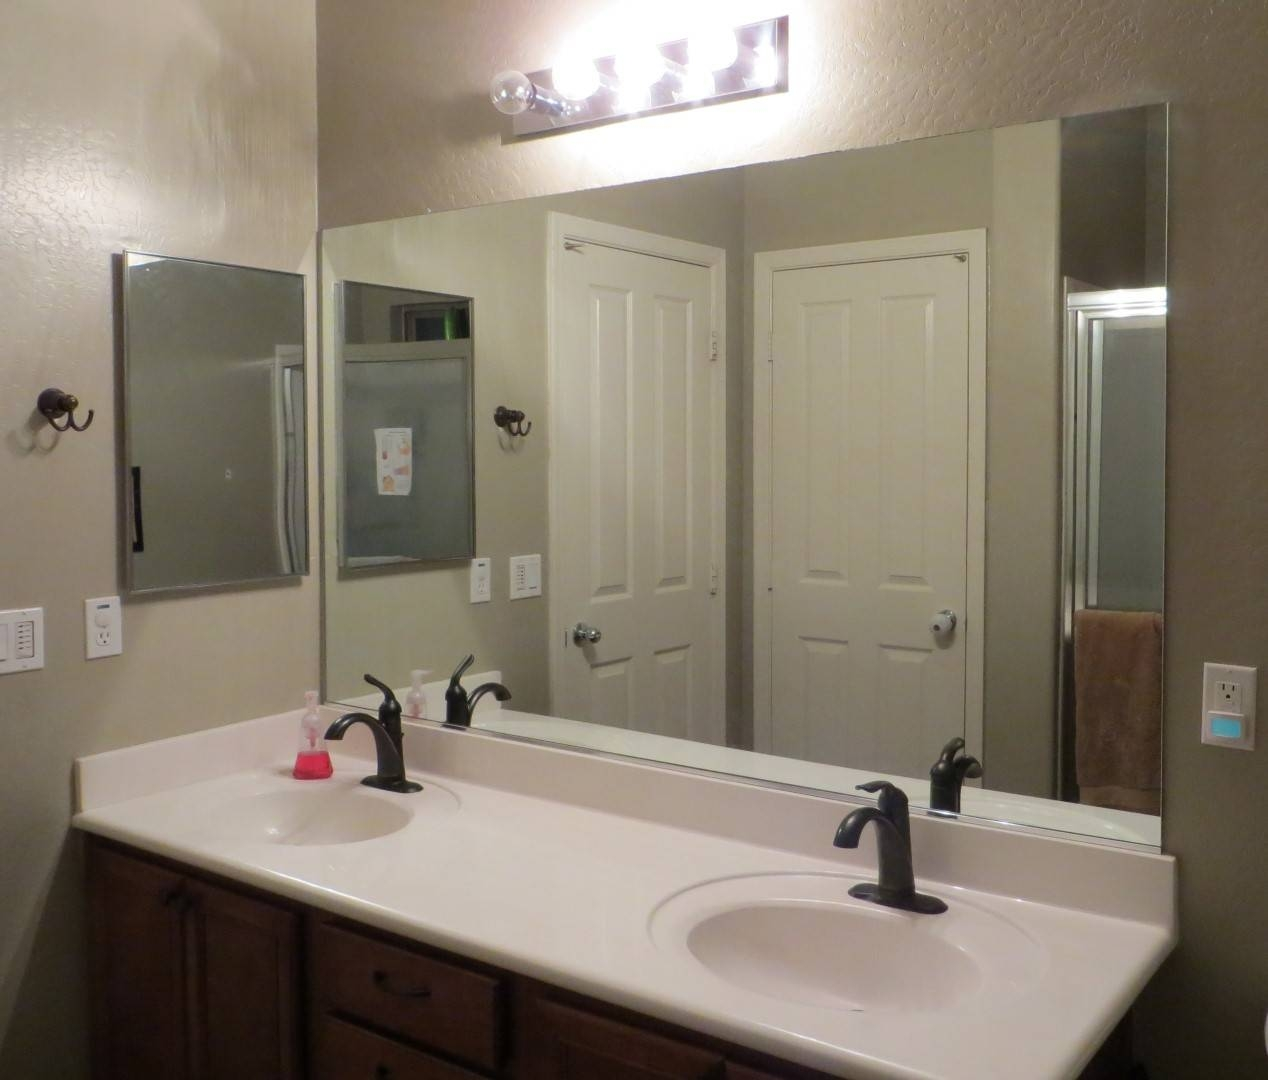 Frameless Bathroom Mirrors Ideas 2017 And Large Mirror Pictures throughout Large No Frame Mirrors (Image 8 of 25)